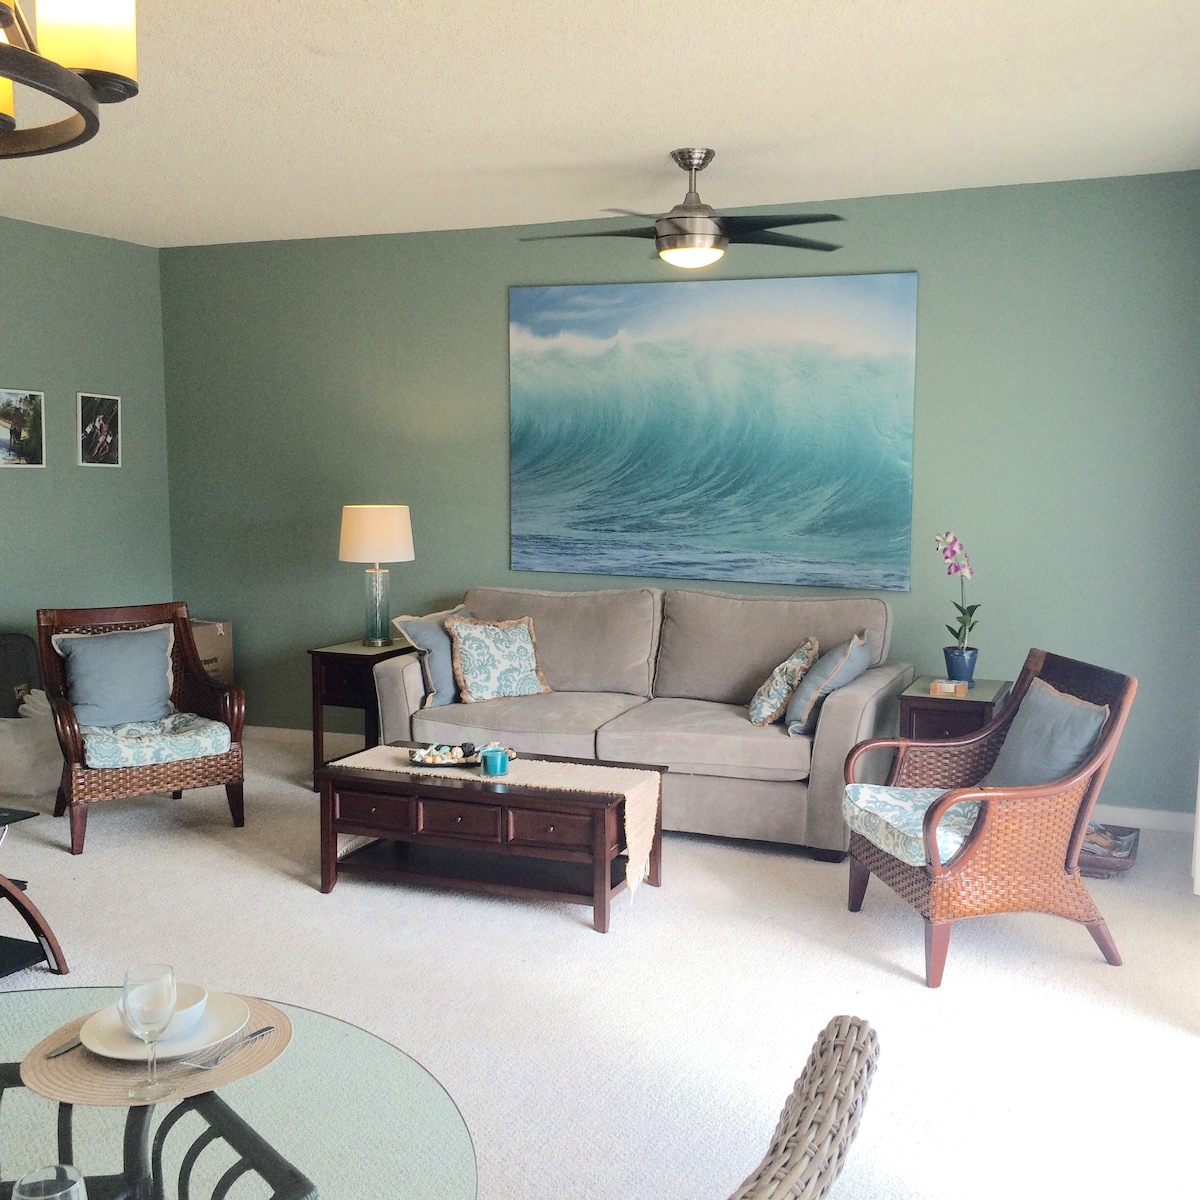 Newly renovated living room.